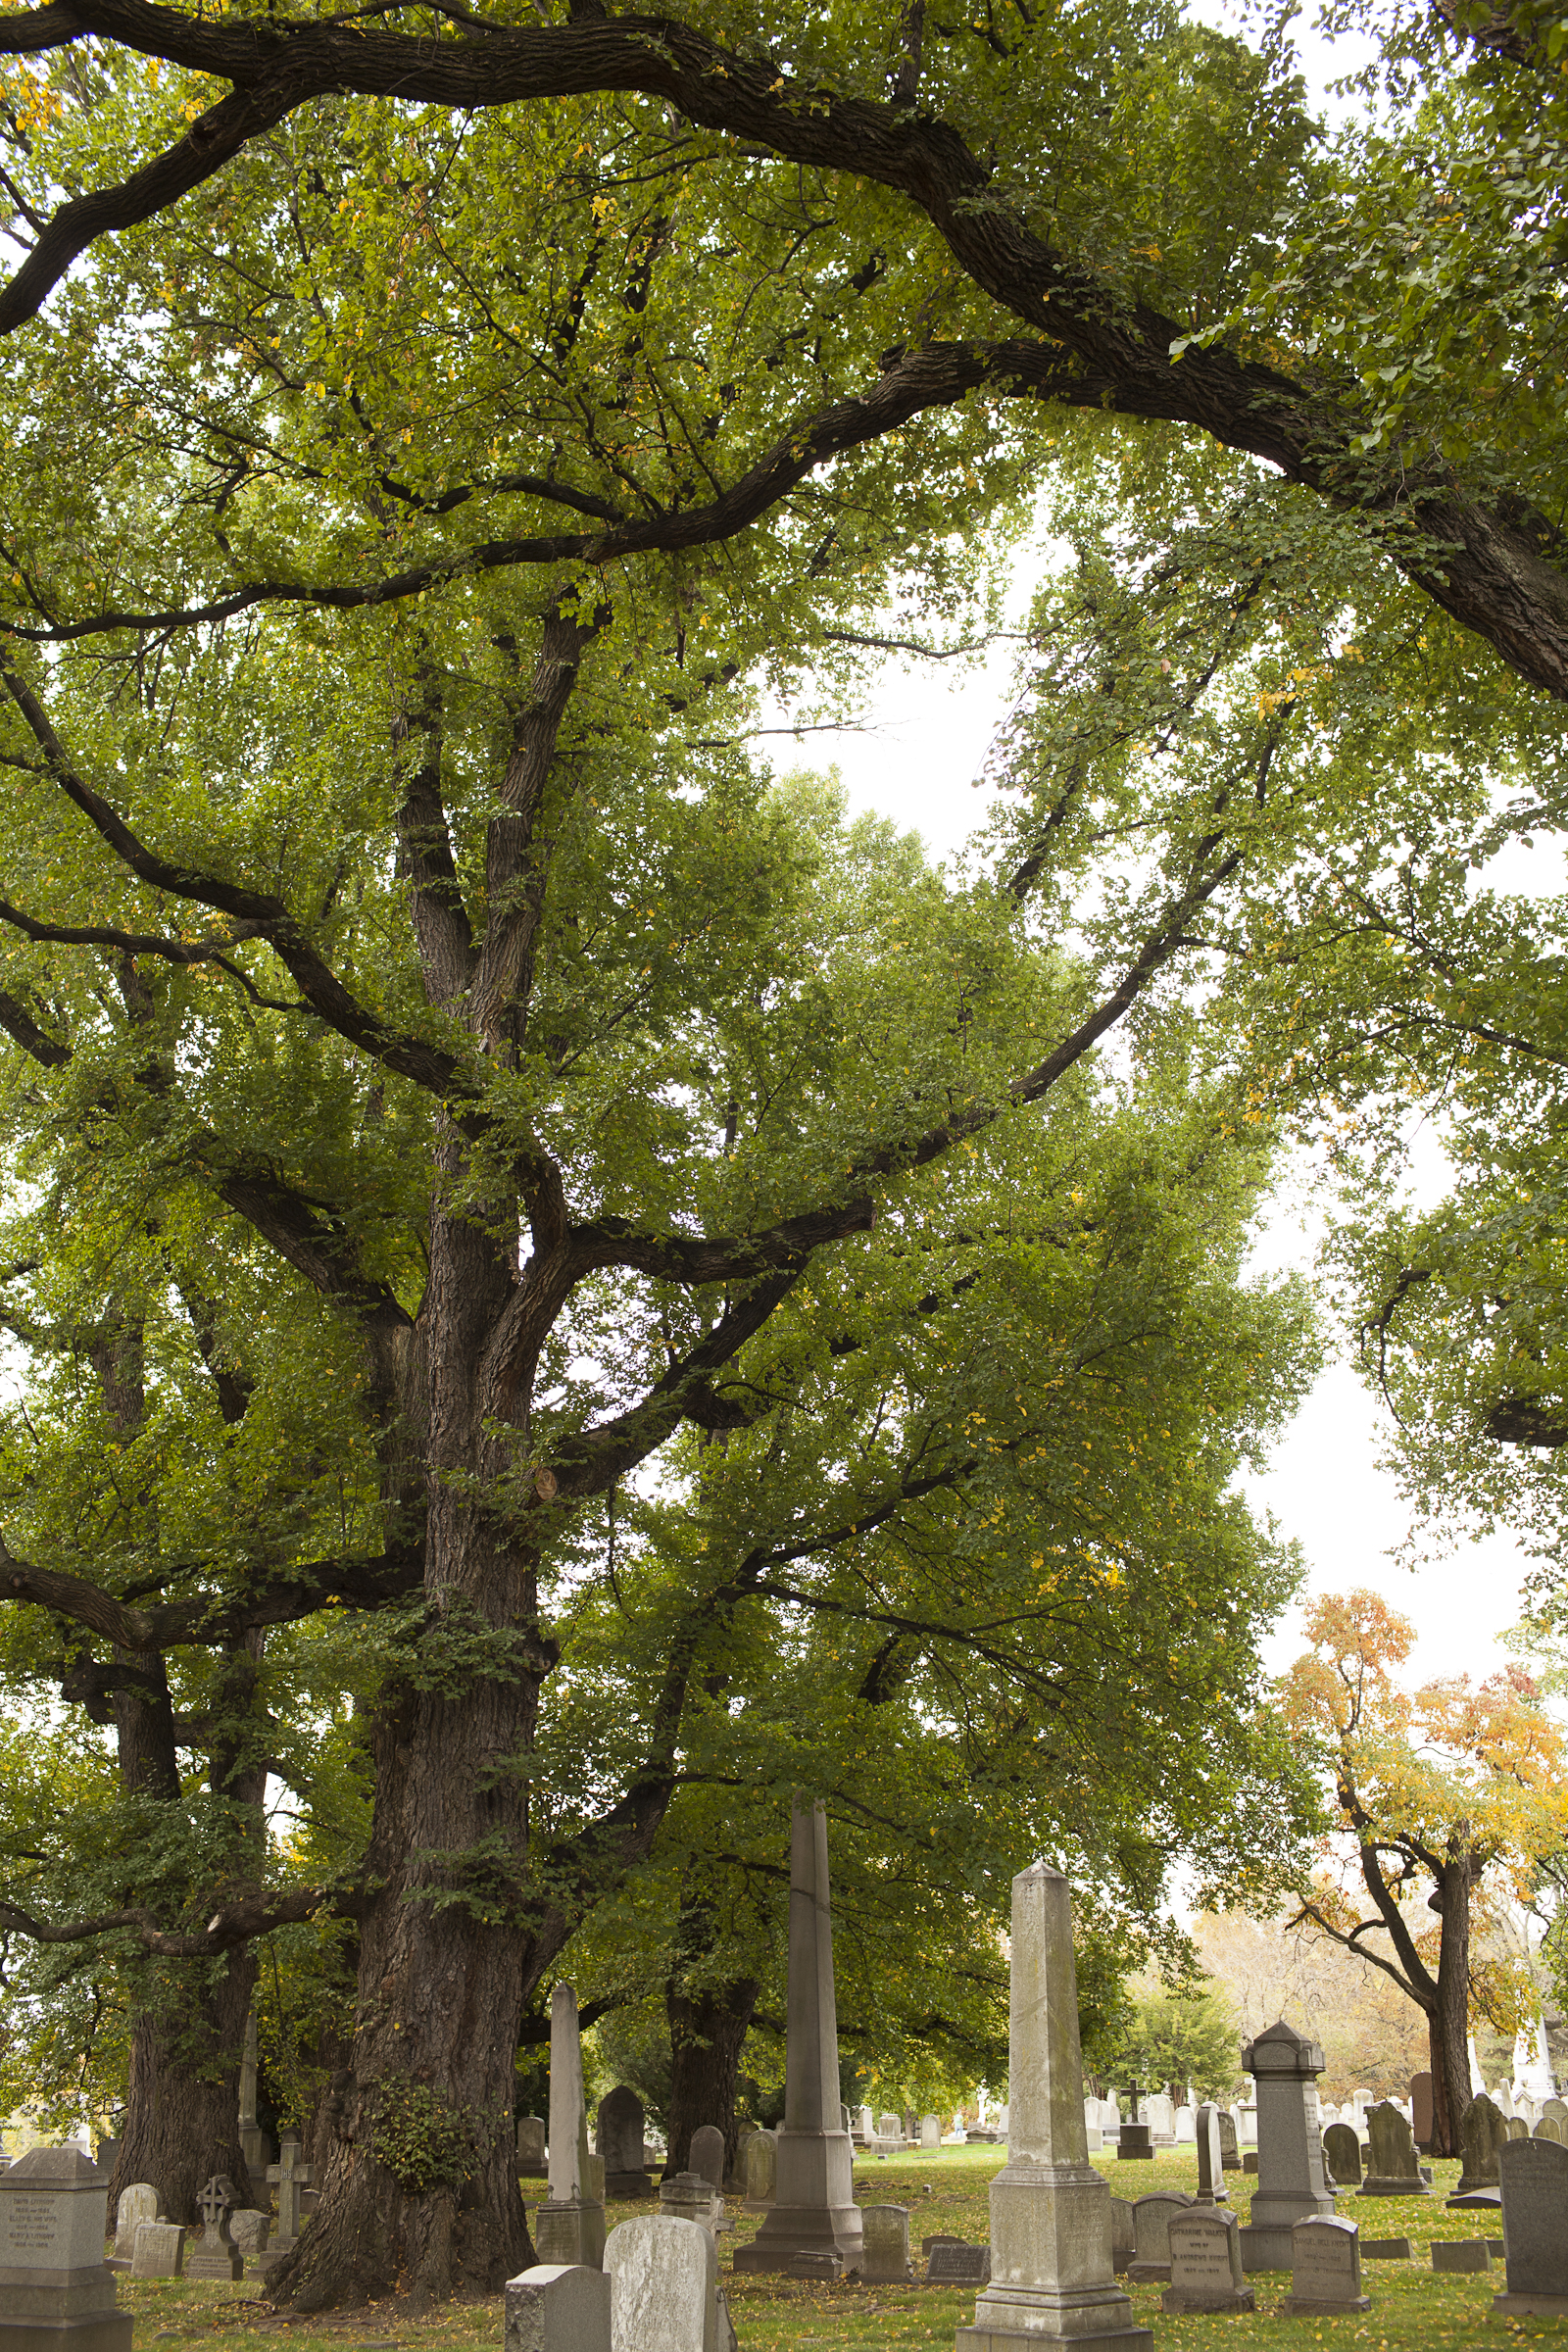 The English elm trees at The Woodlands are remnants of William Hamilton's 18th century landscaped estate. Some of the trees probably pre-date the cemetery monuments beneath them, and may even have been planted by Hamilton in the late 18th century. (Photograph by Ryan Collerd.)